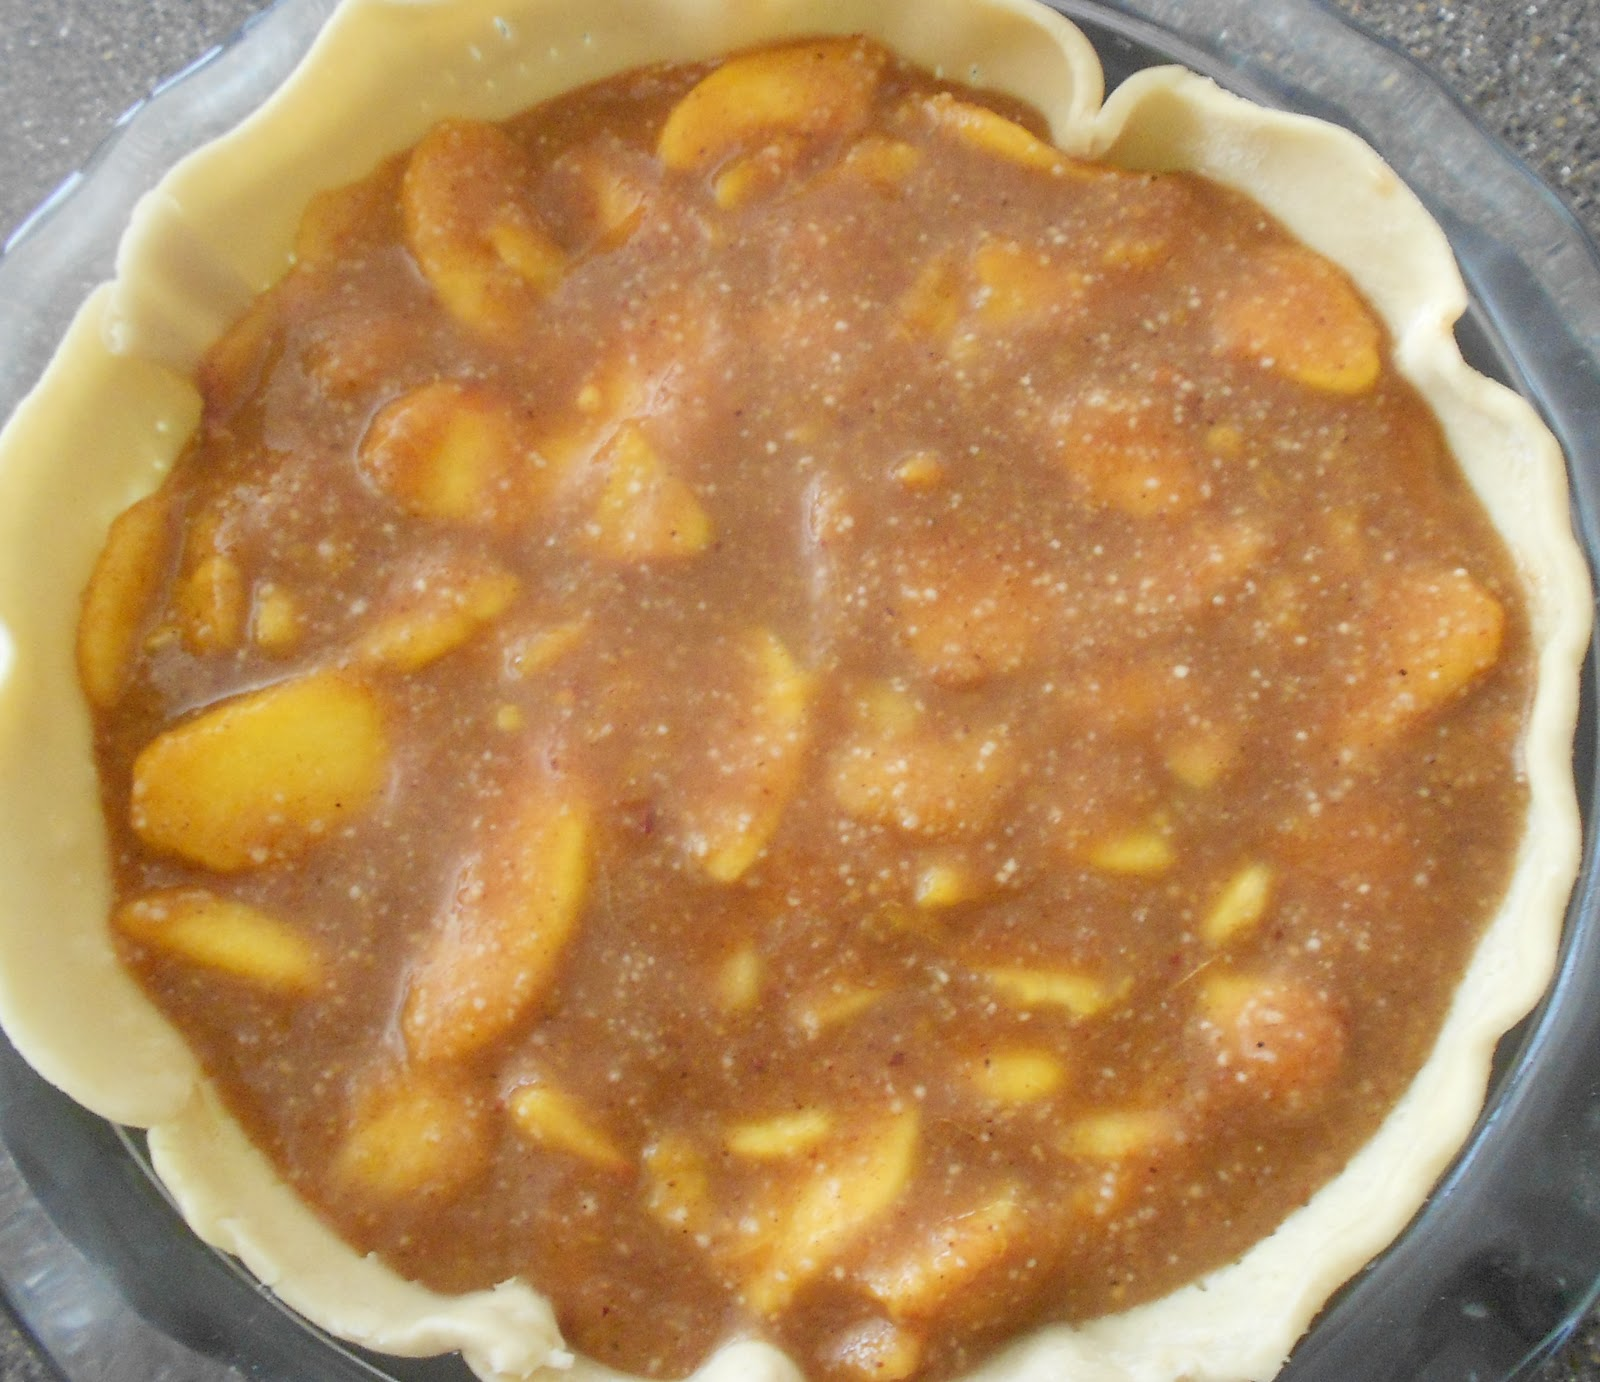 Baking Banquet: CARAMEL PEACH PIE (FRESH PEACH PIE VARIATION)